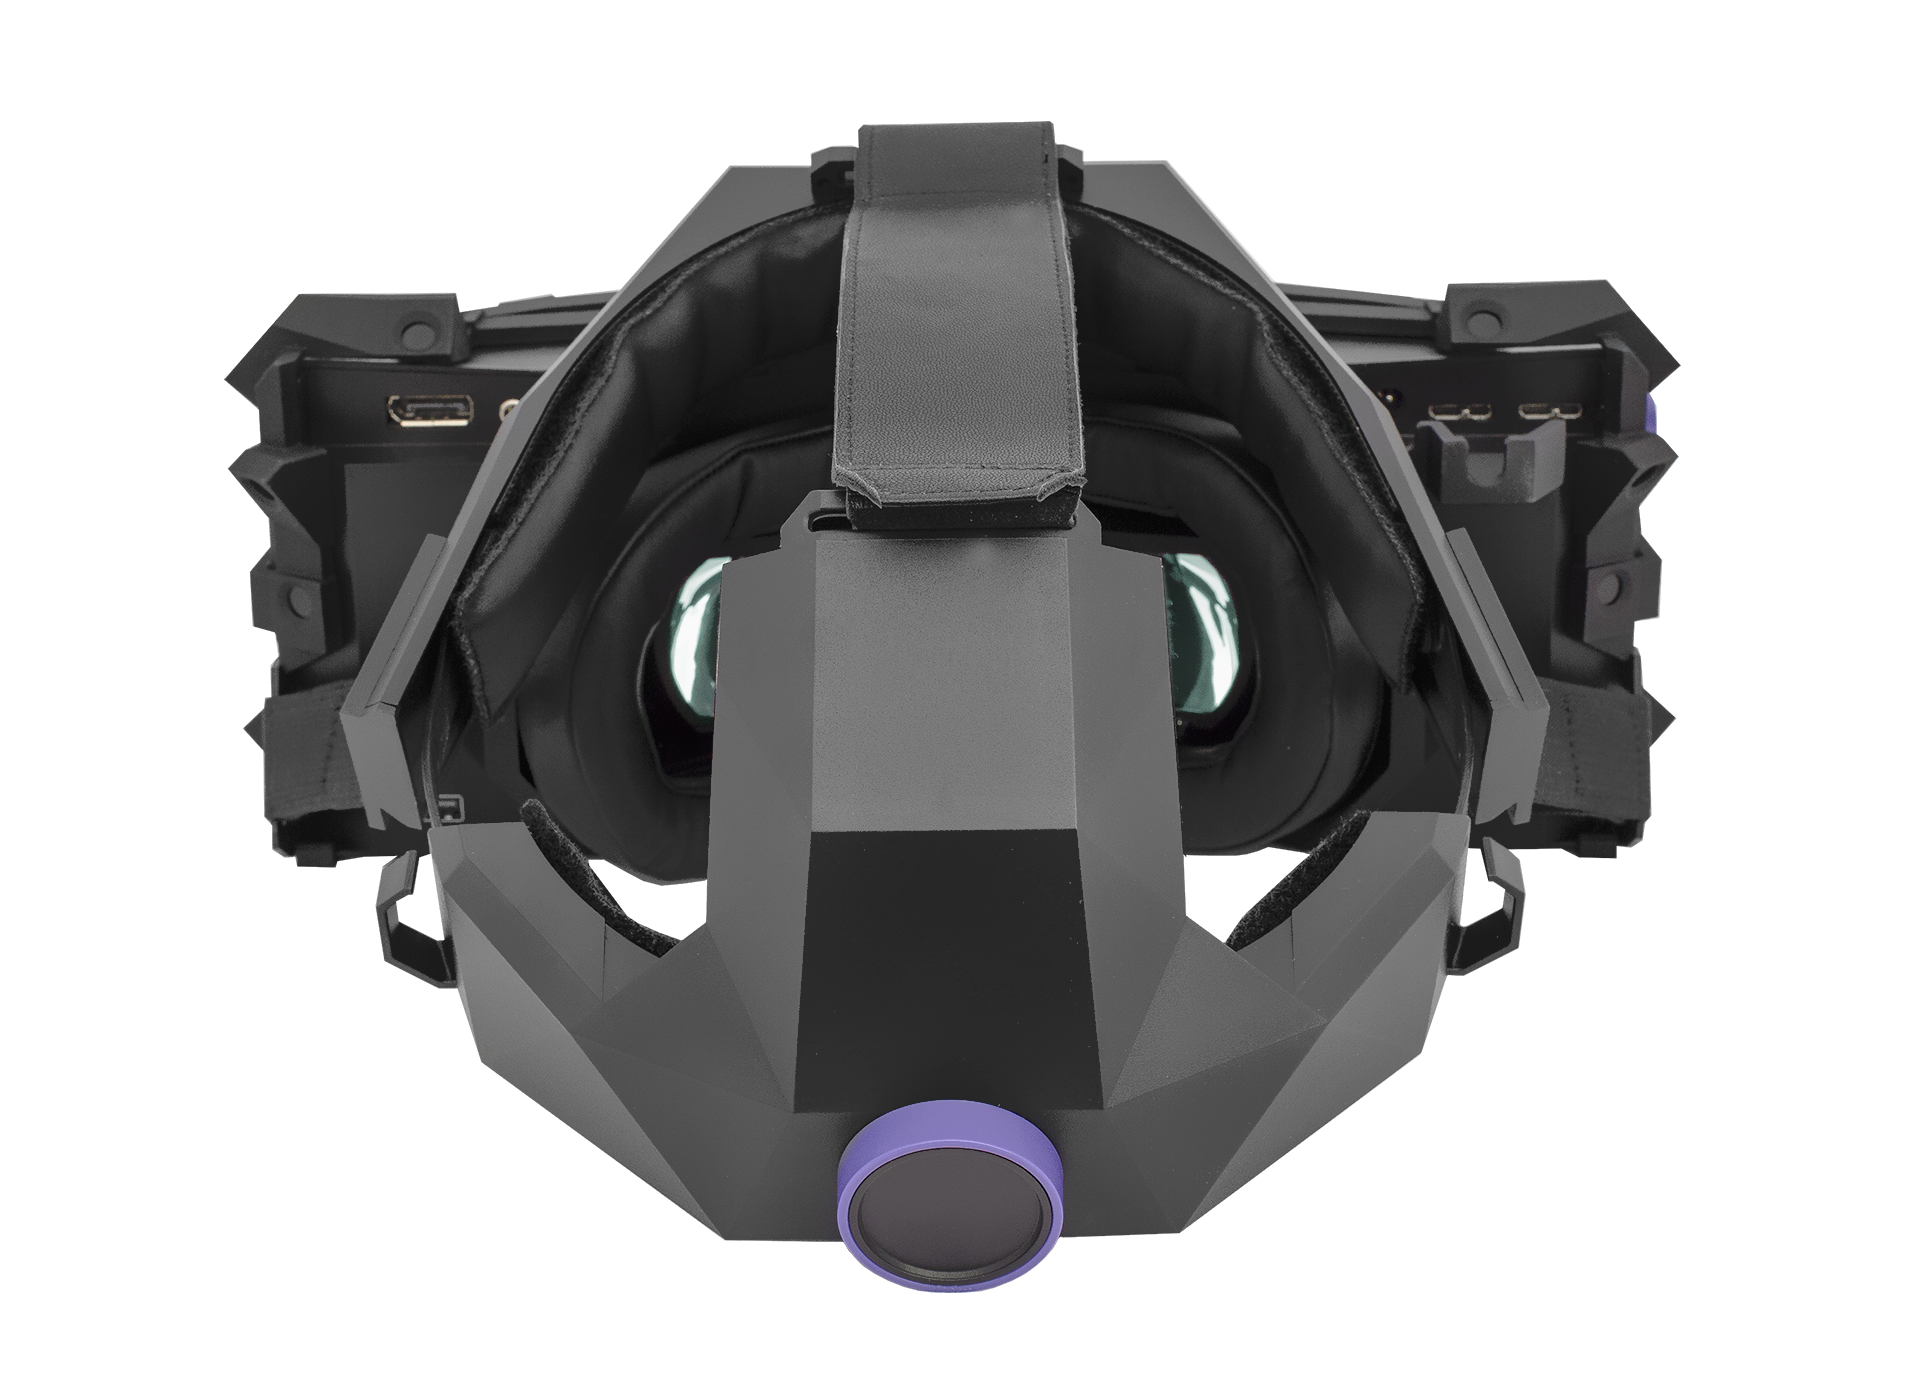 XTAL 5K high-end VR headset back side view